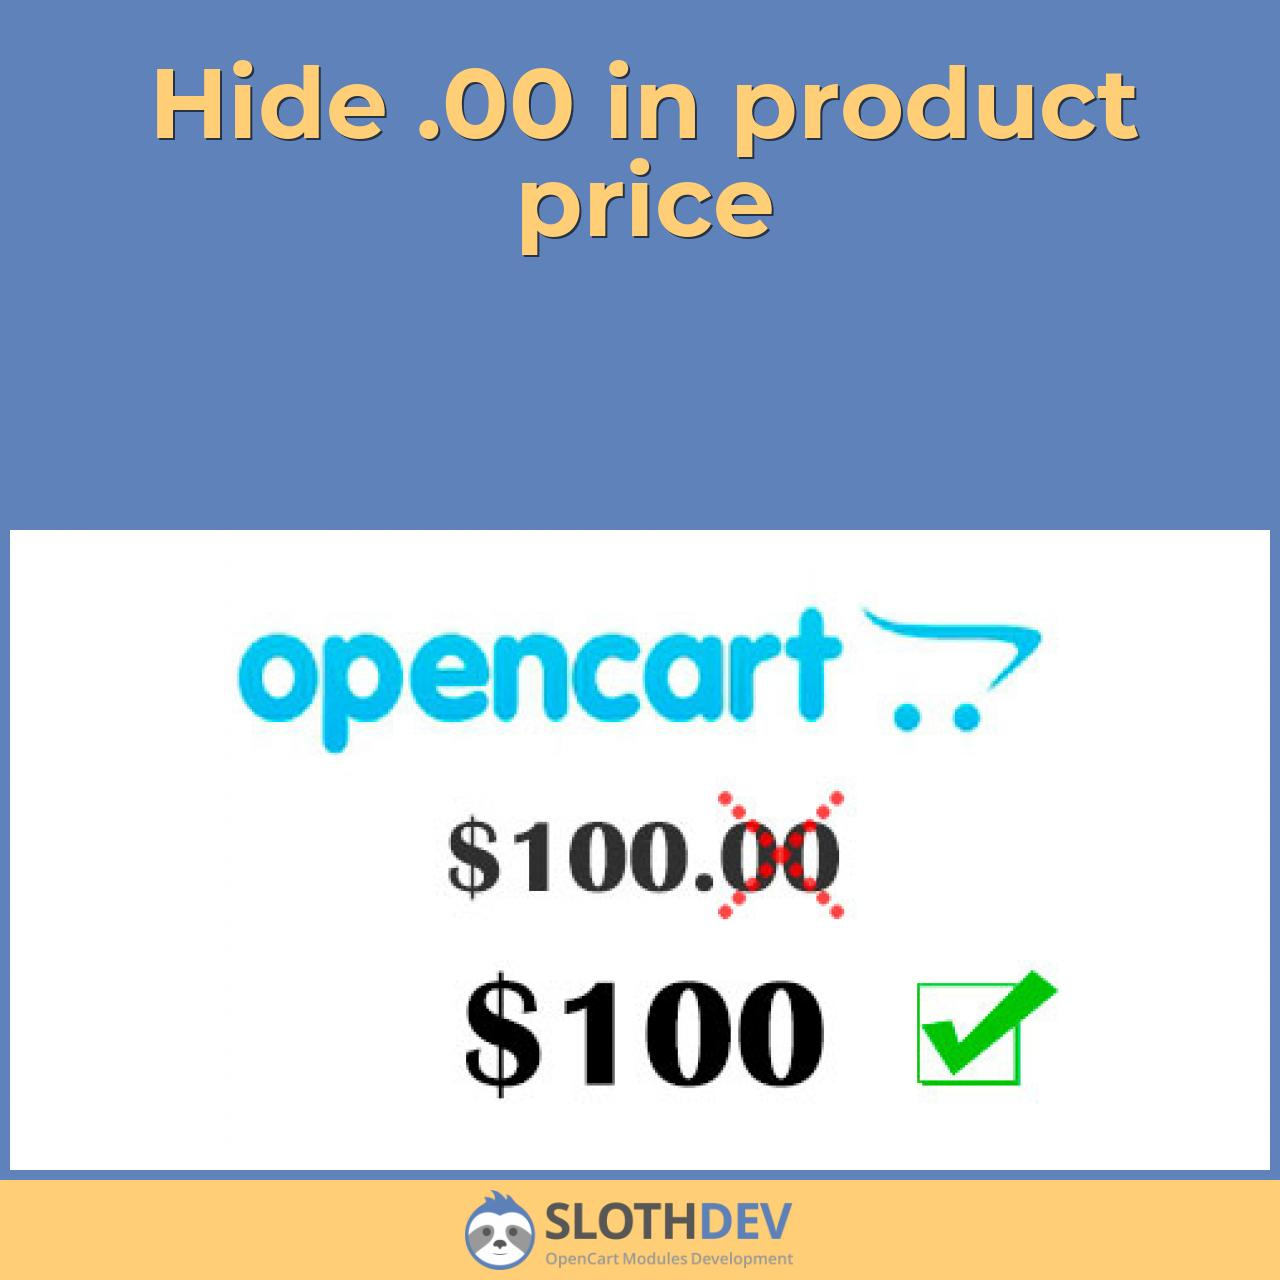 Hide .00 in product price